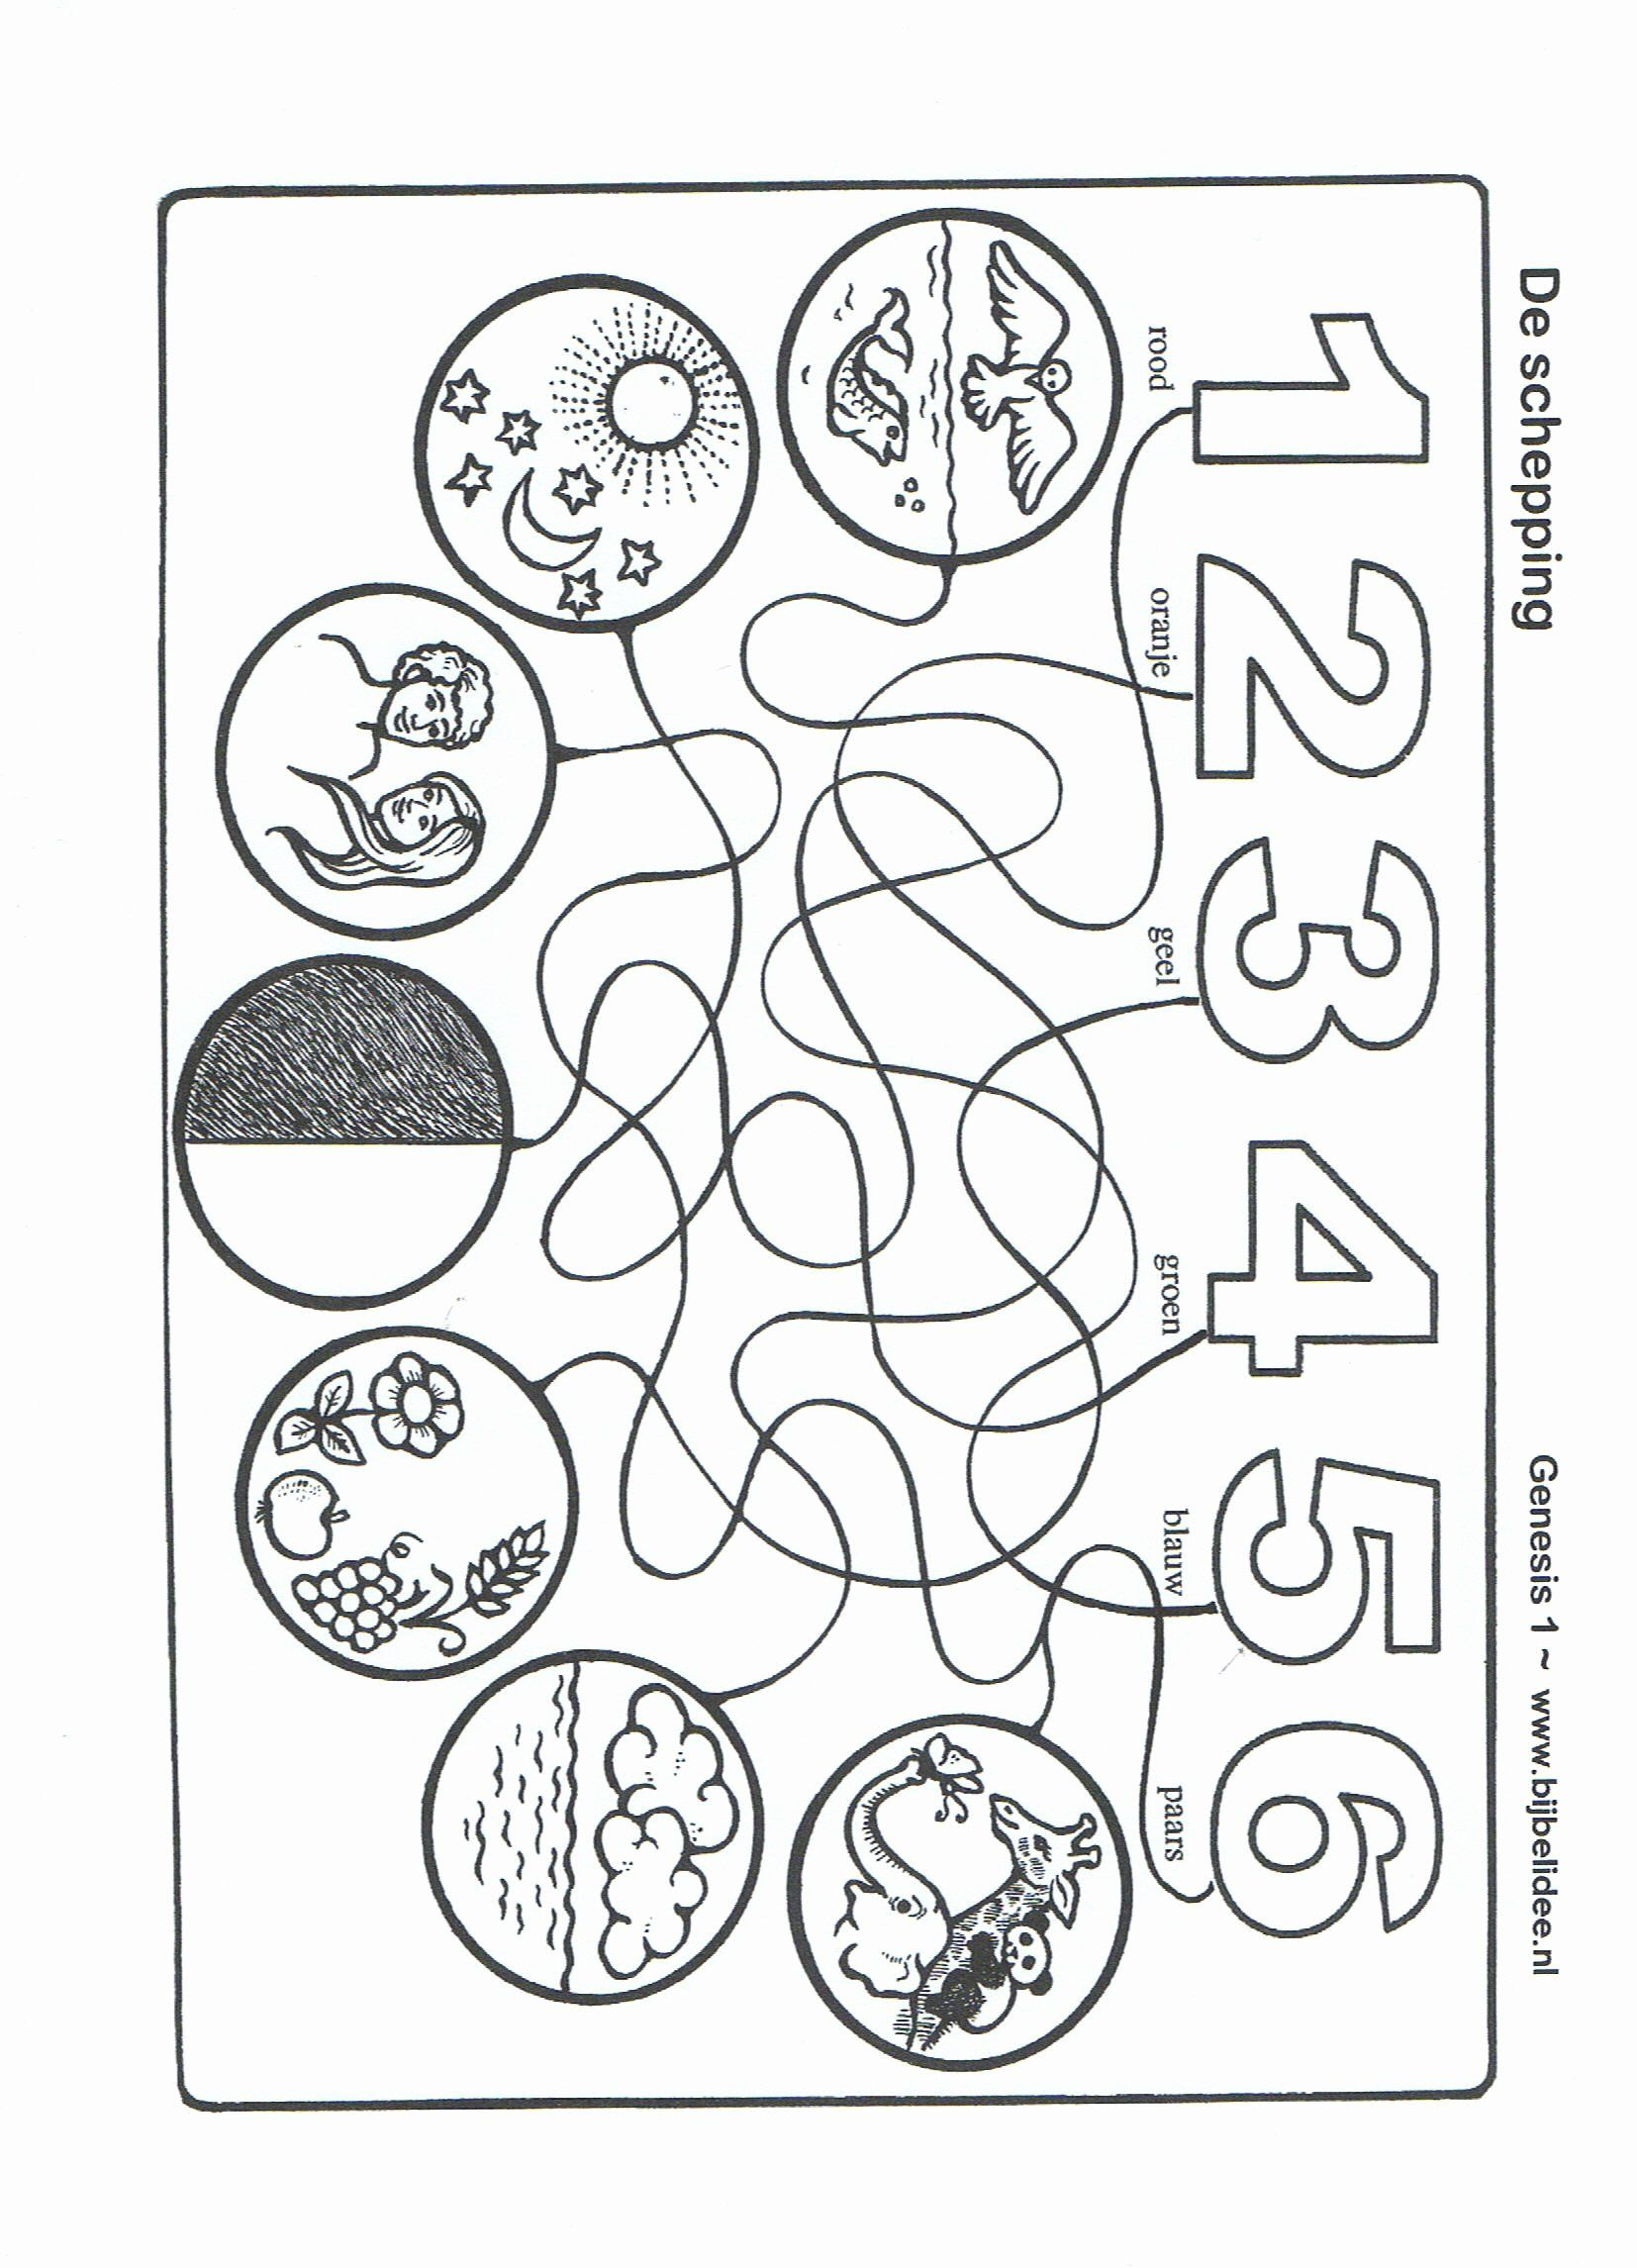 Days Of Creation Coloring Page New 28 Of Days Creation Template Creation Coloring Pages Bible Crafts Sunday School Kids